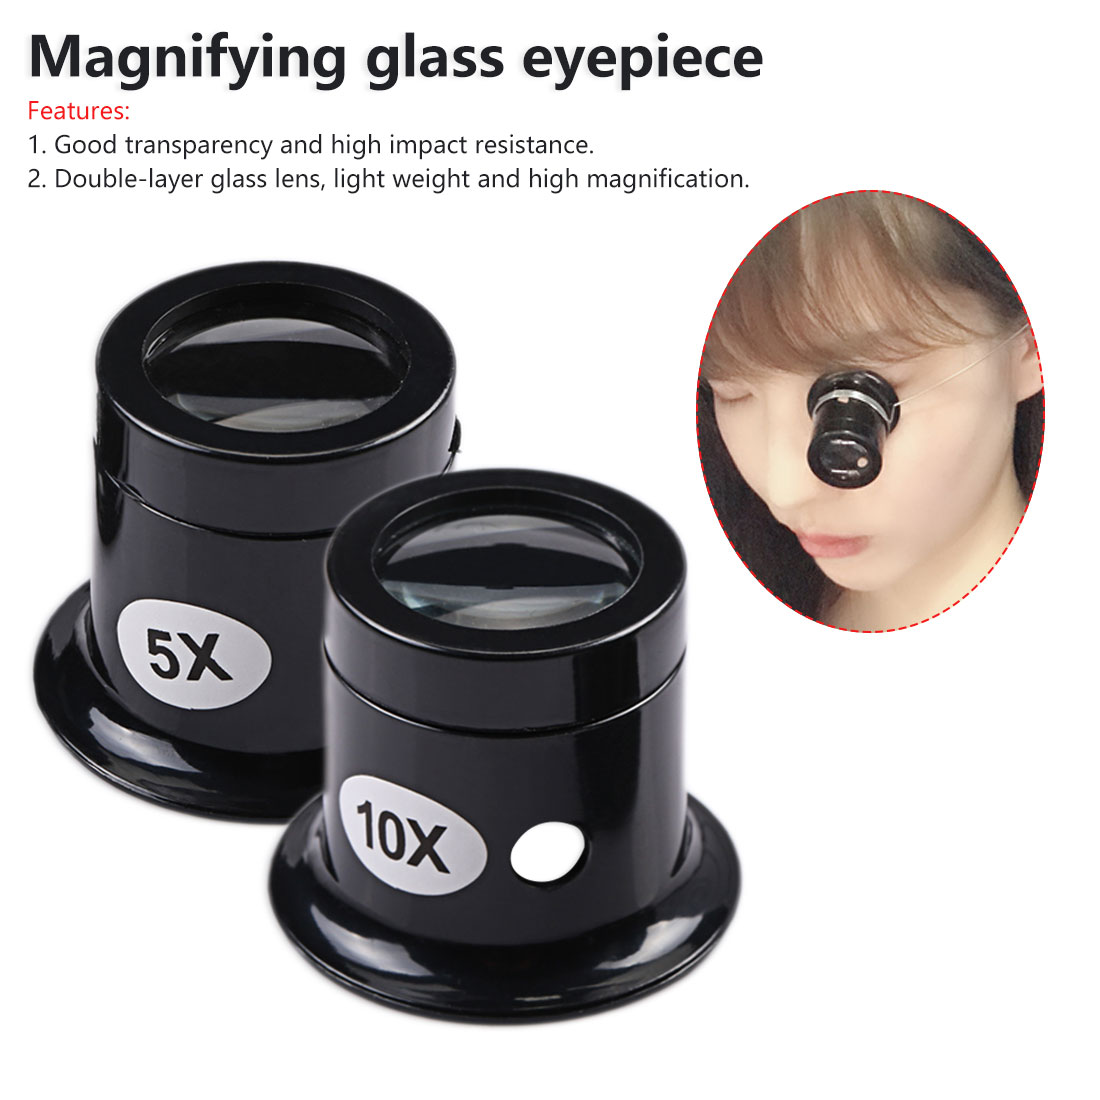 10X/5X Monocular Magnifying Glass Loupe Lens Portable Jeweler Watch Magnifier Tool Eye Magnifier Len Repair Kit